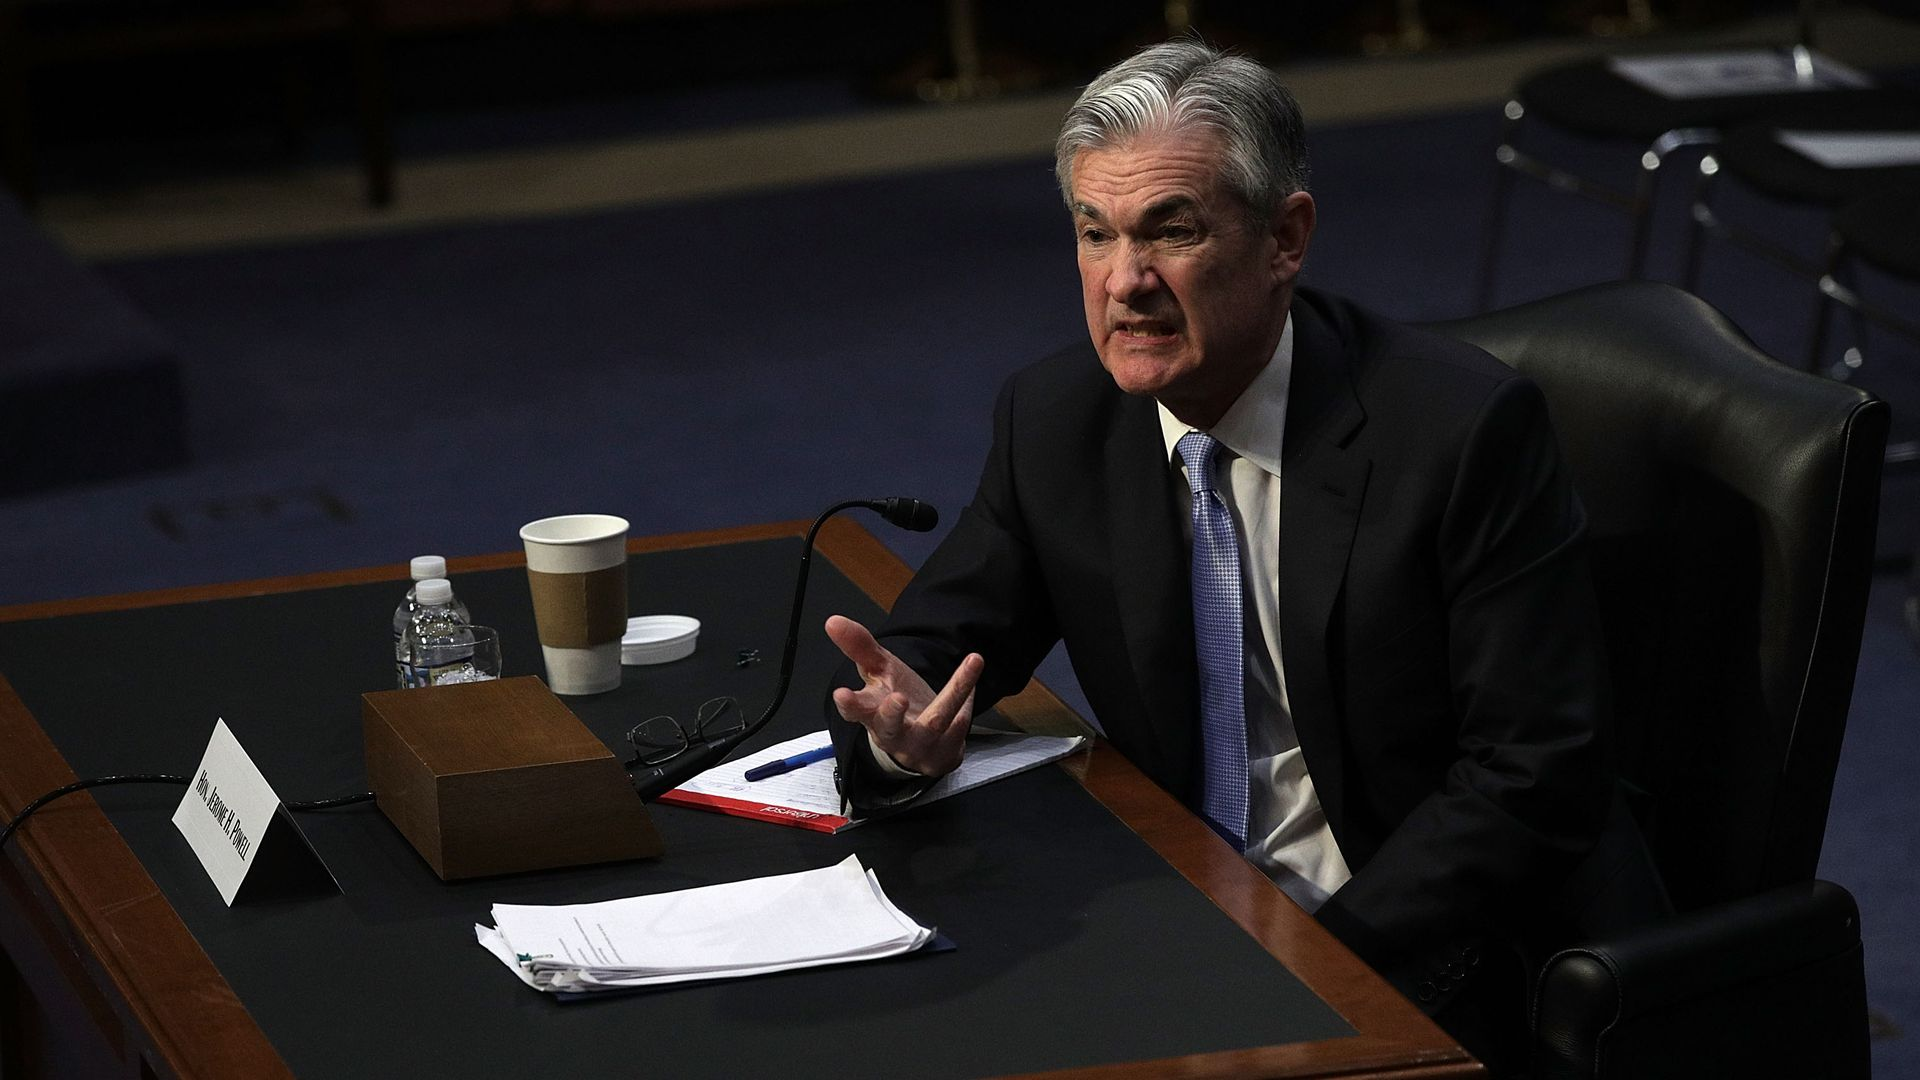 The new Fed Chair Jerome Powell.